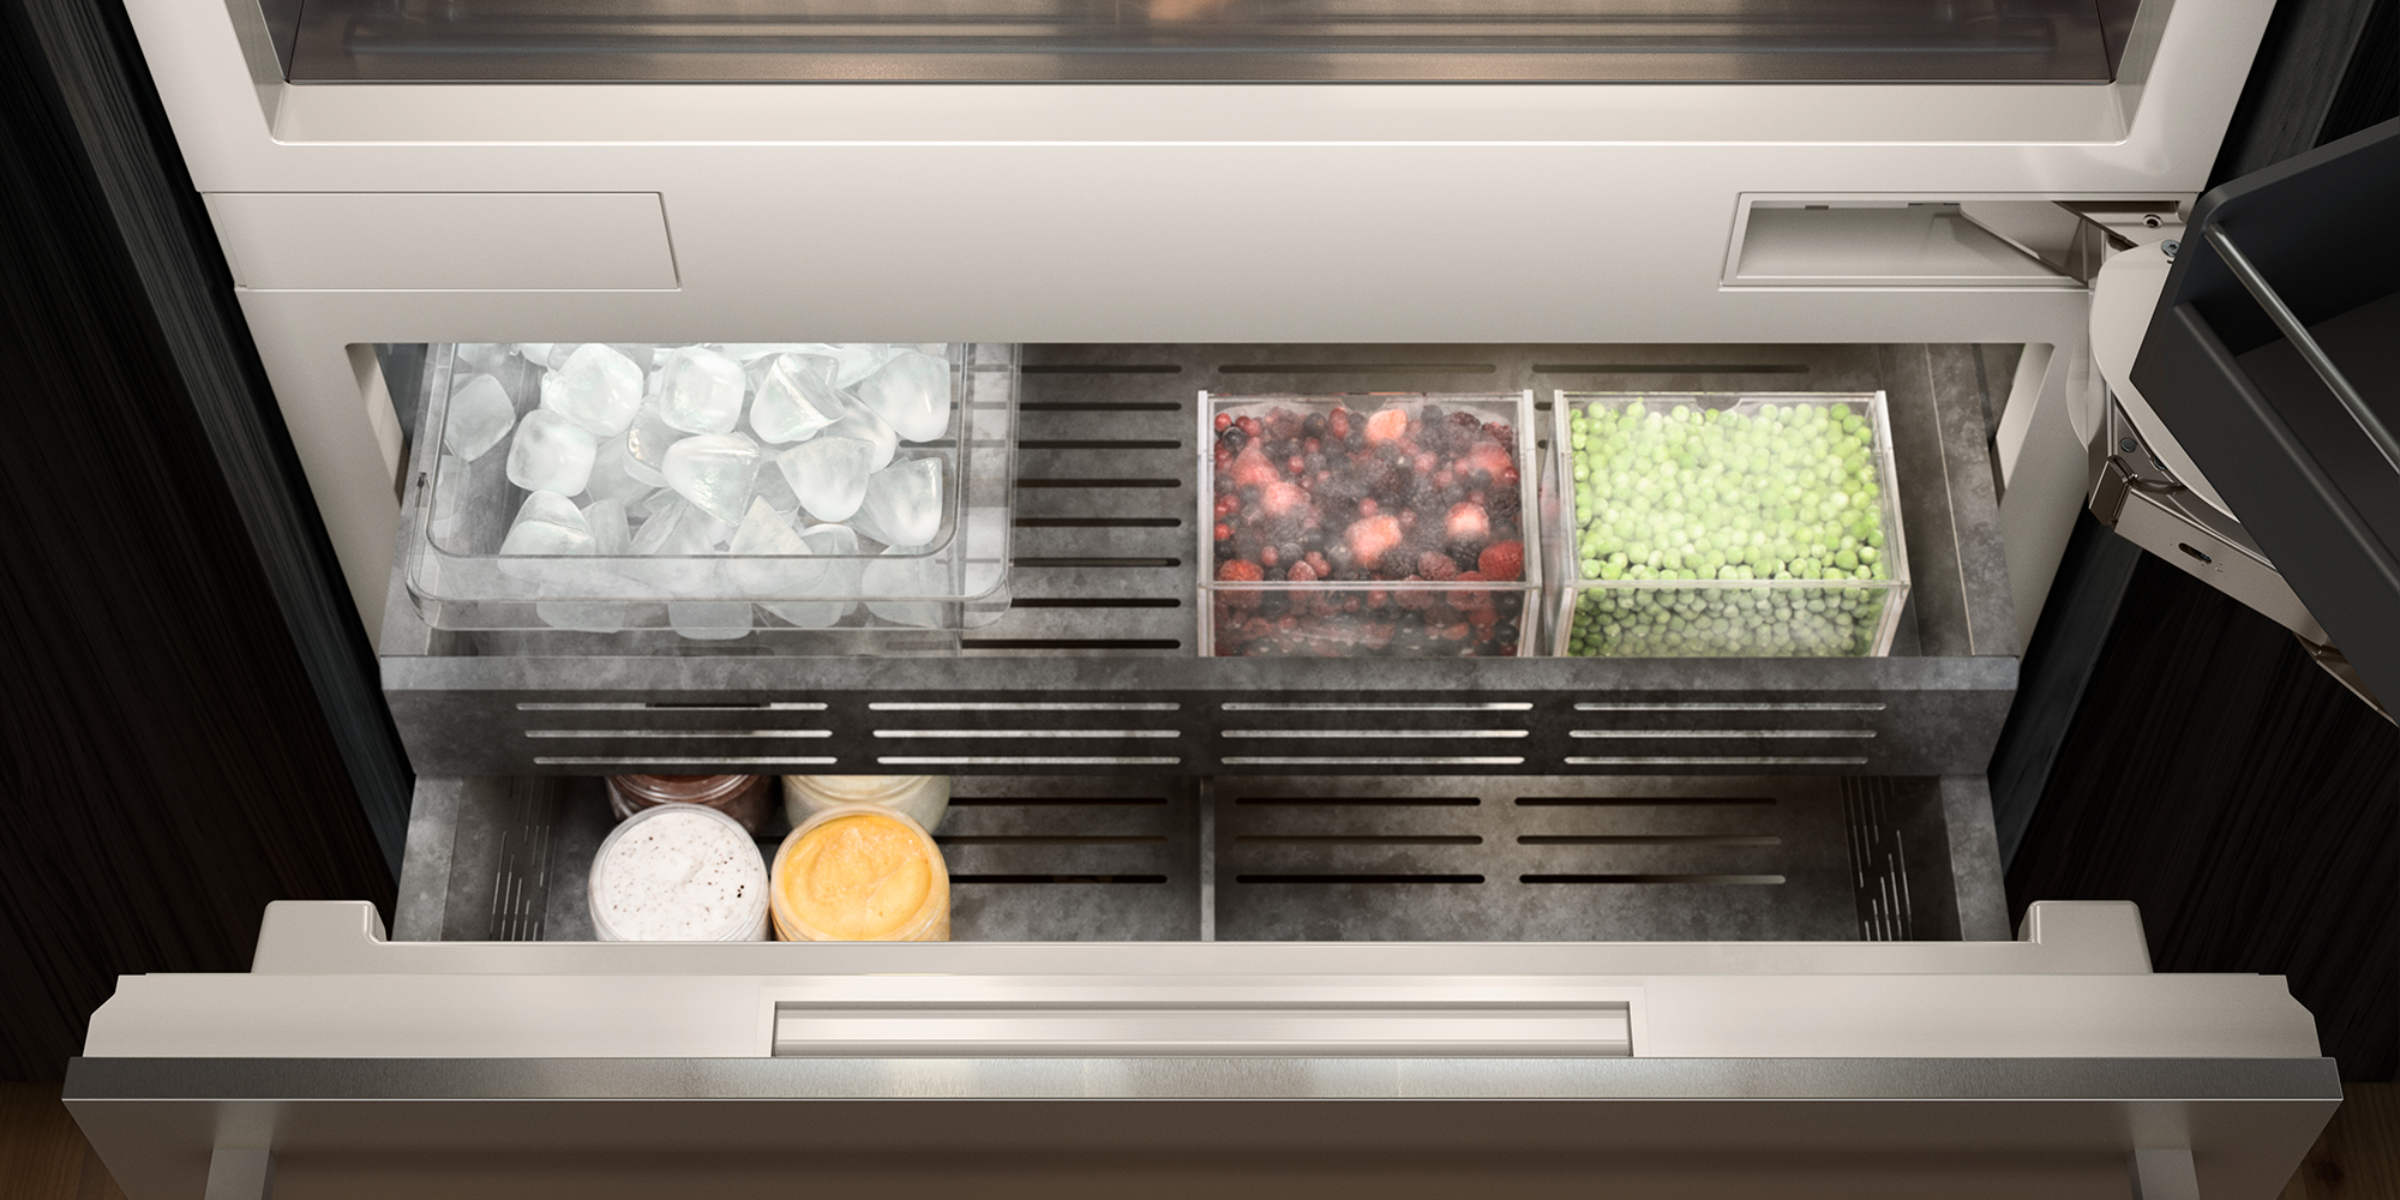 Gaggenau kitchen appliances fridge